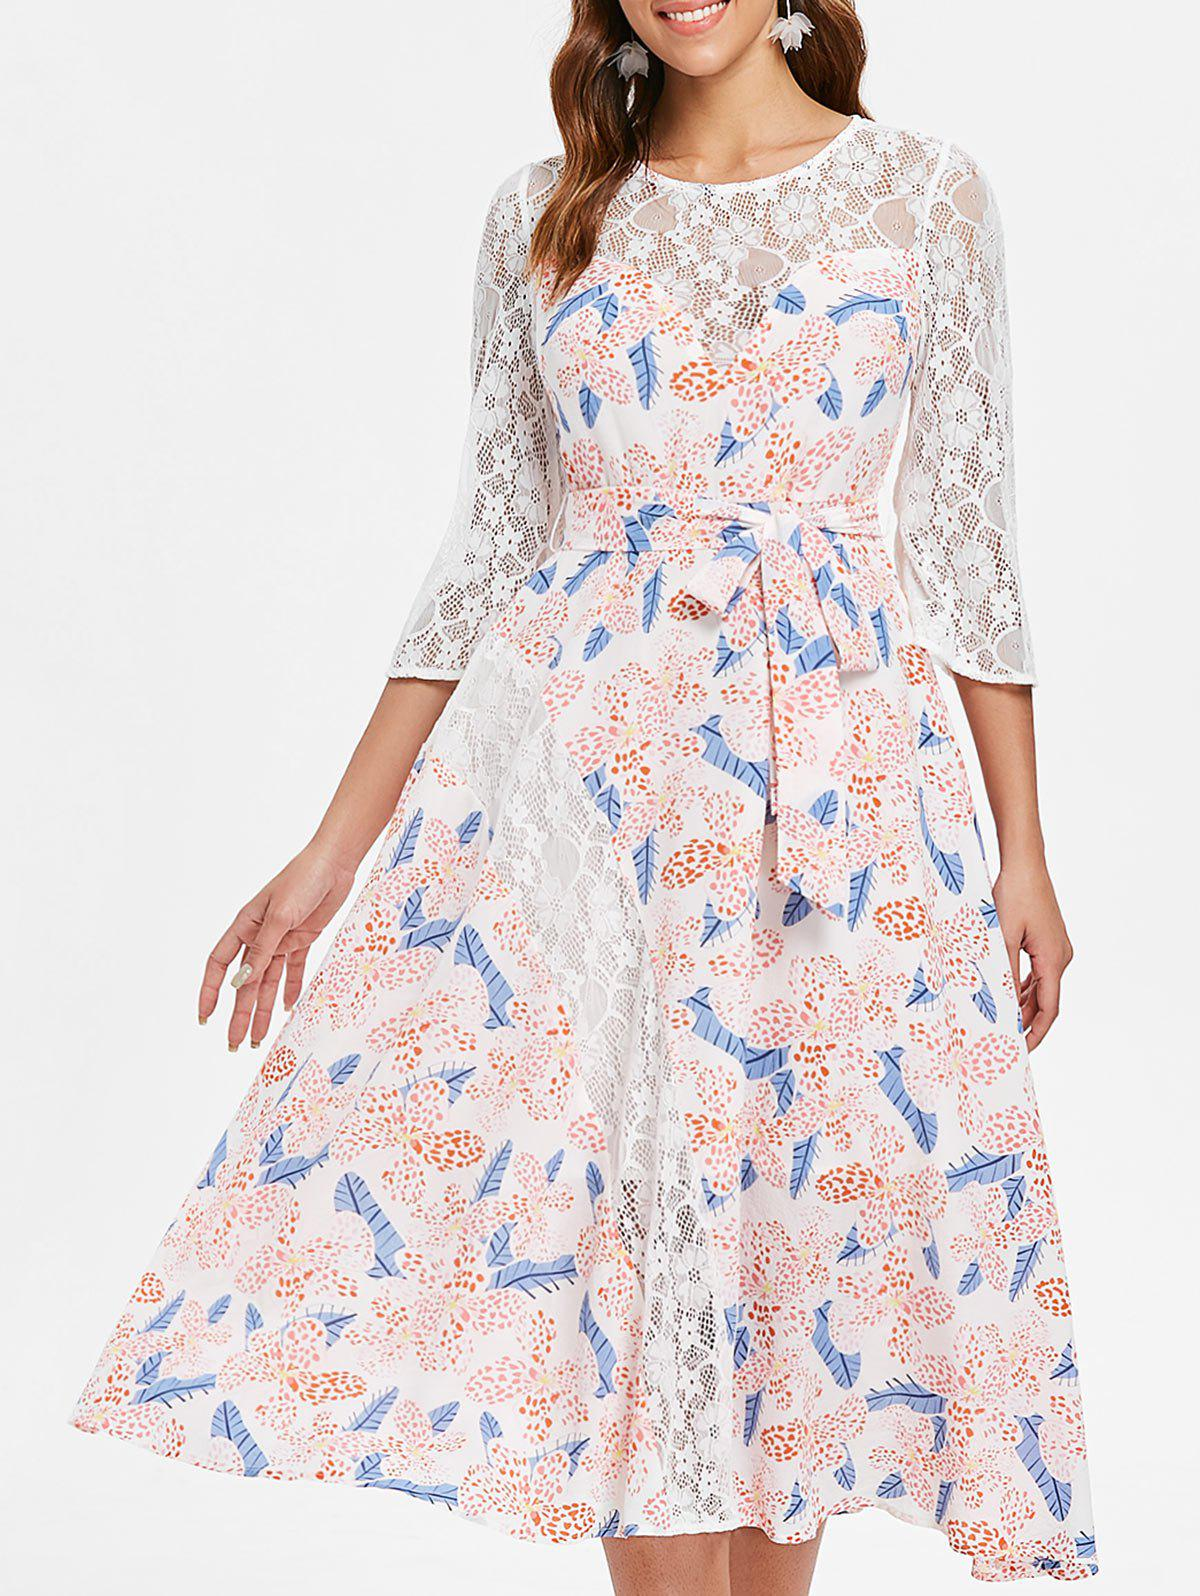 Lace Panel Floral Midi Dress - WHITE L